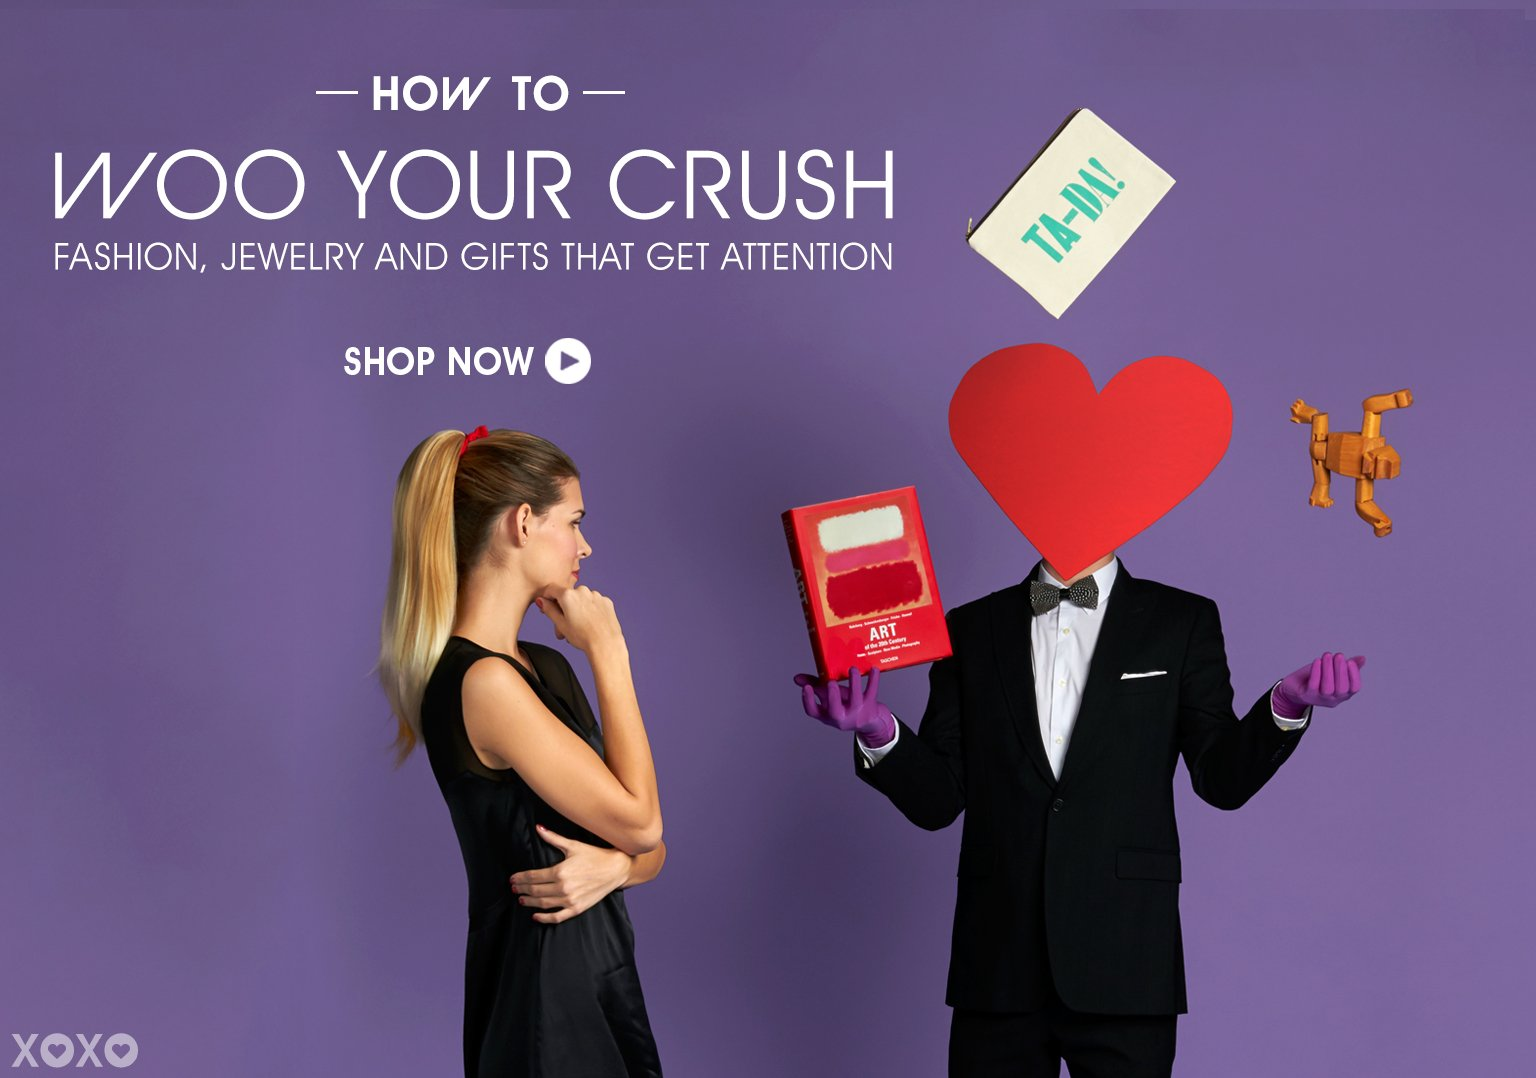 How to Woo Your Crush